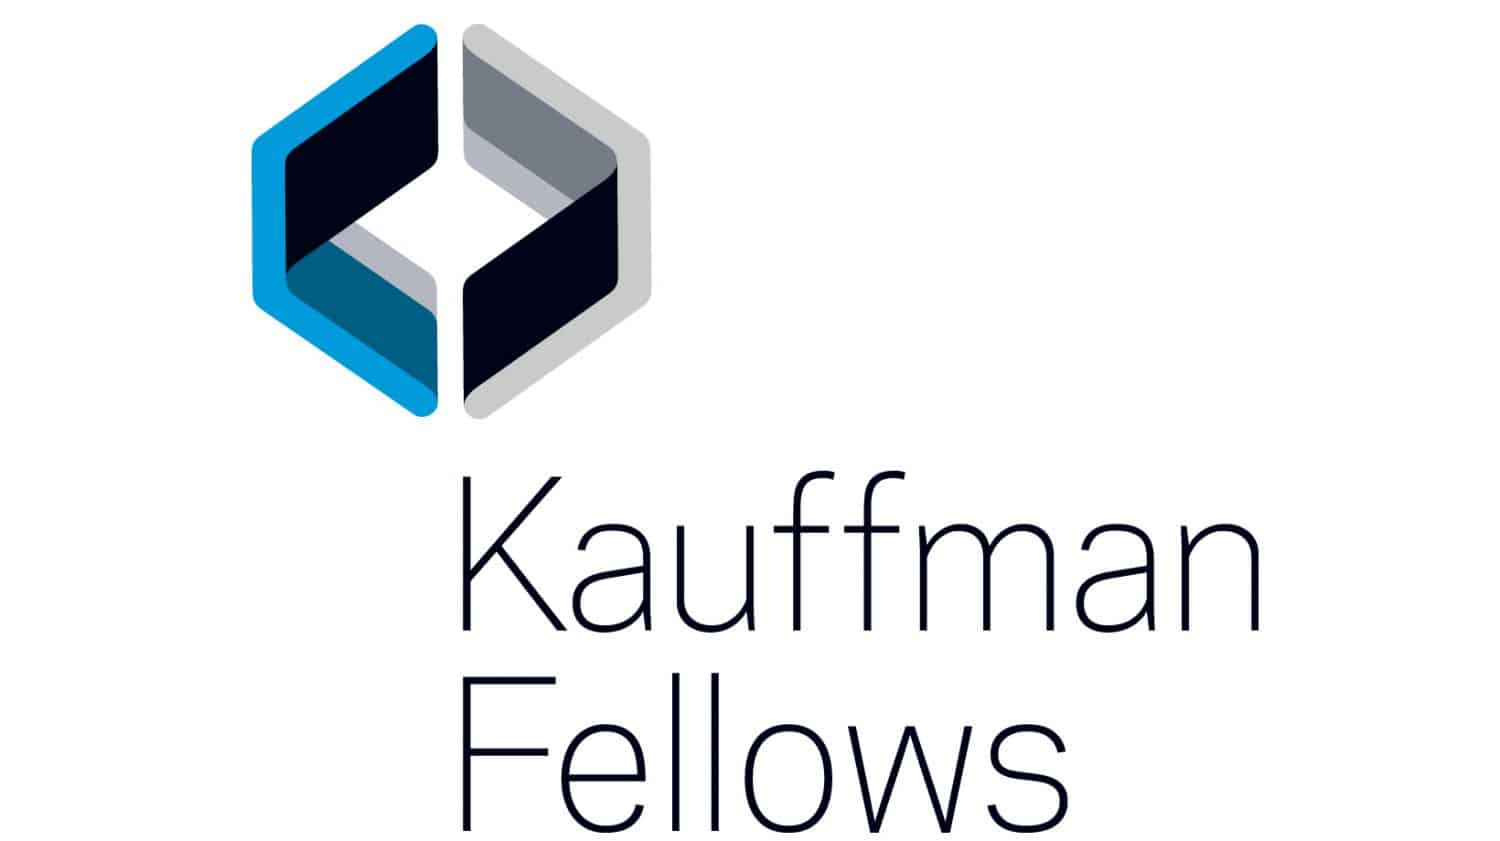 Kauffman Fellowship